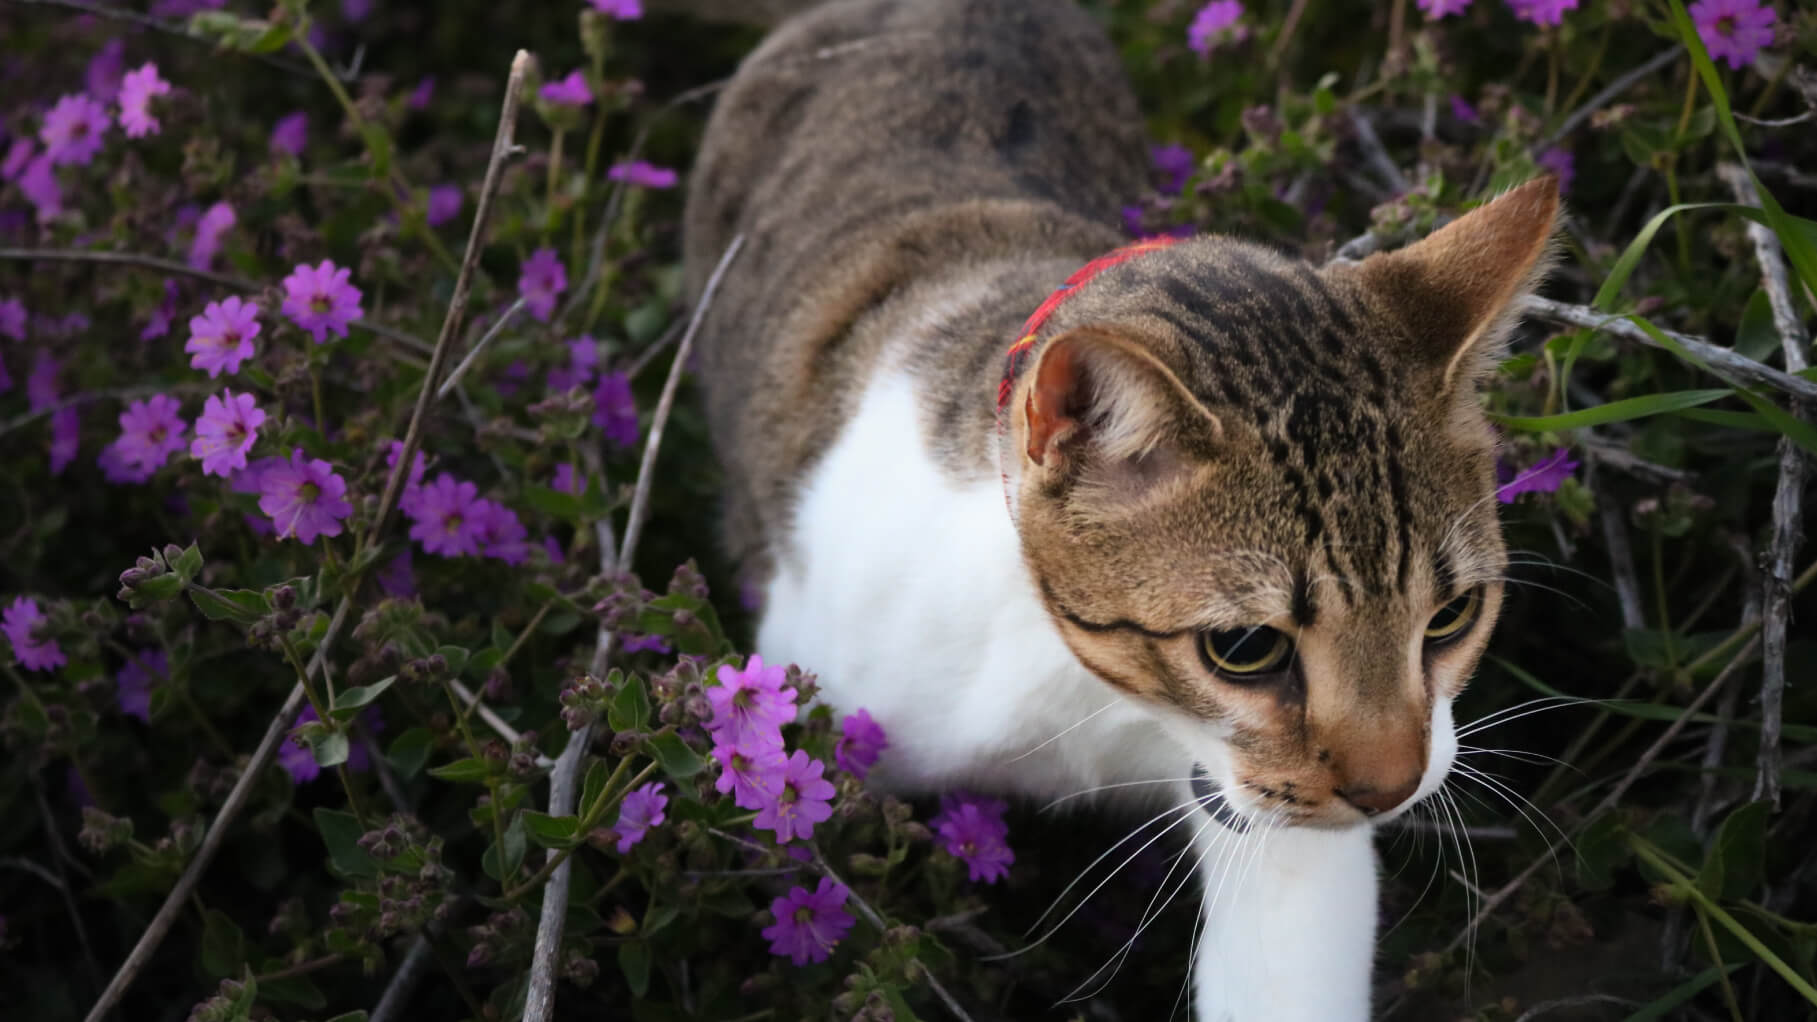 cat walking through a flower garden after his owner learned about spring health tips